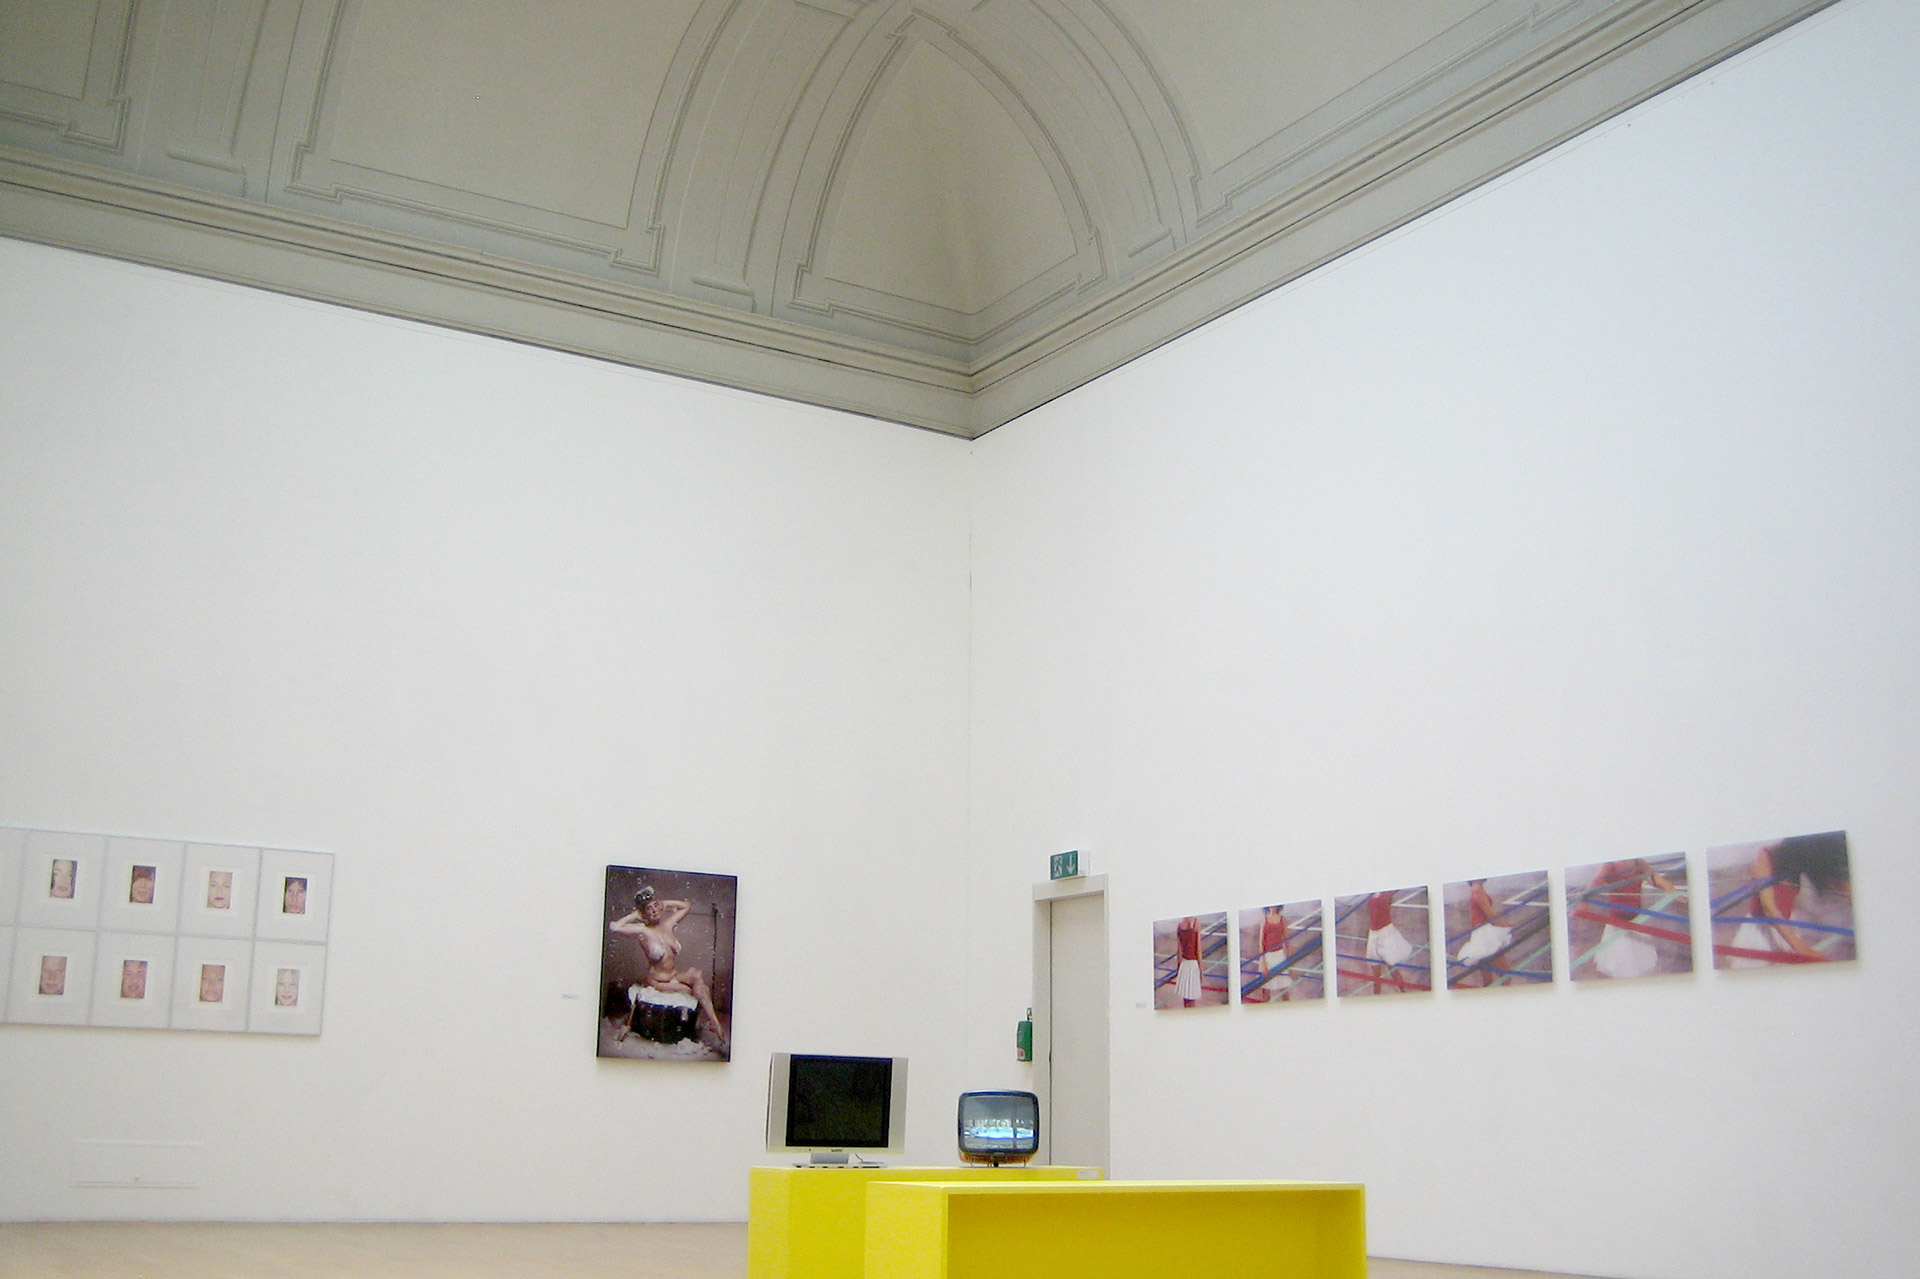 The-Non-Age-Kunsthall-Winterthur-2009-2.jpg